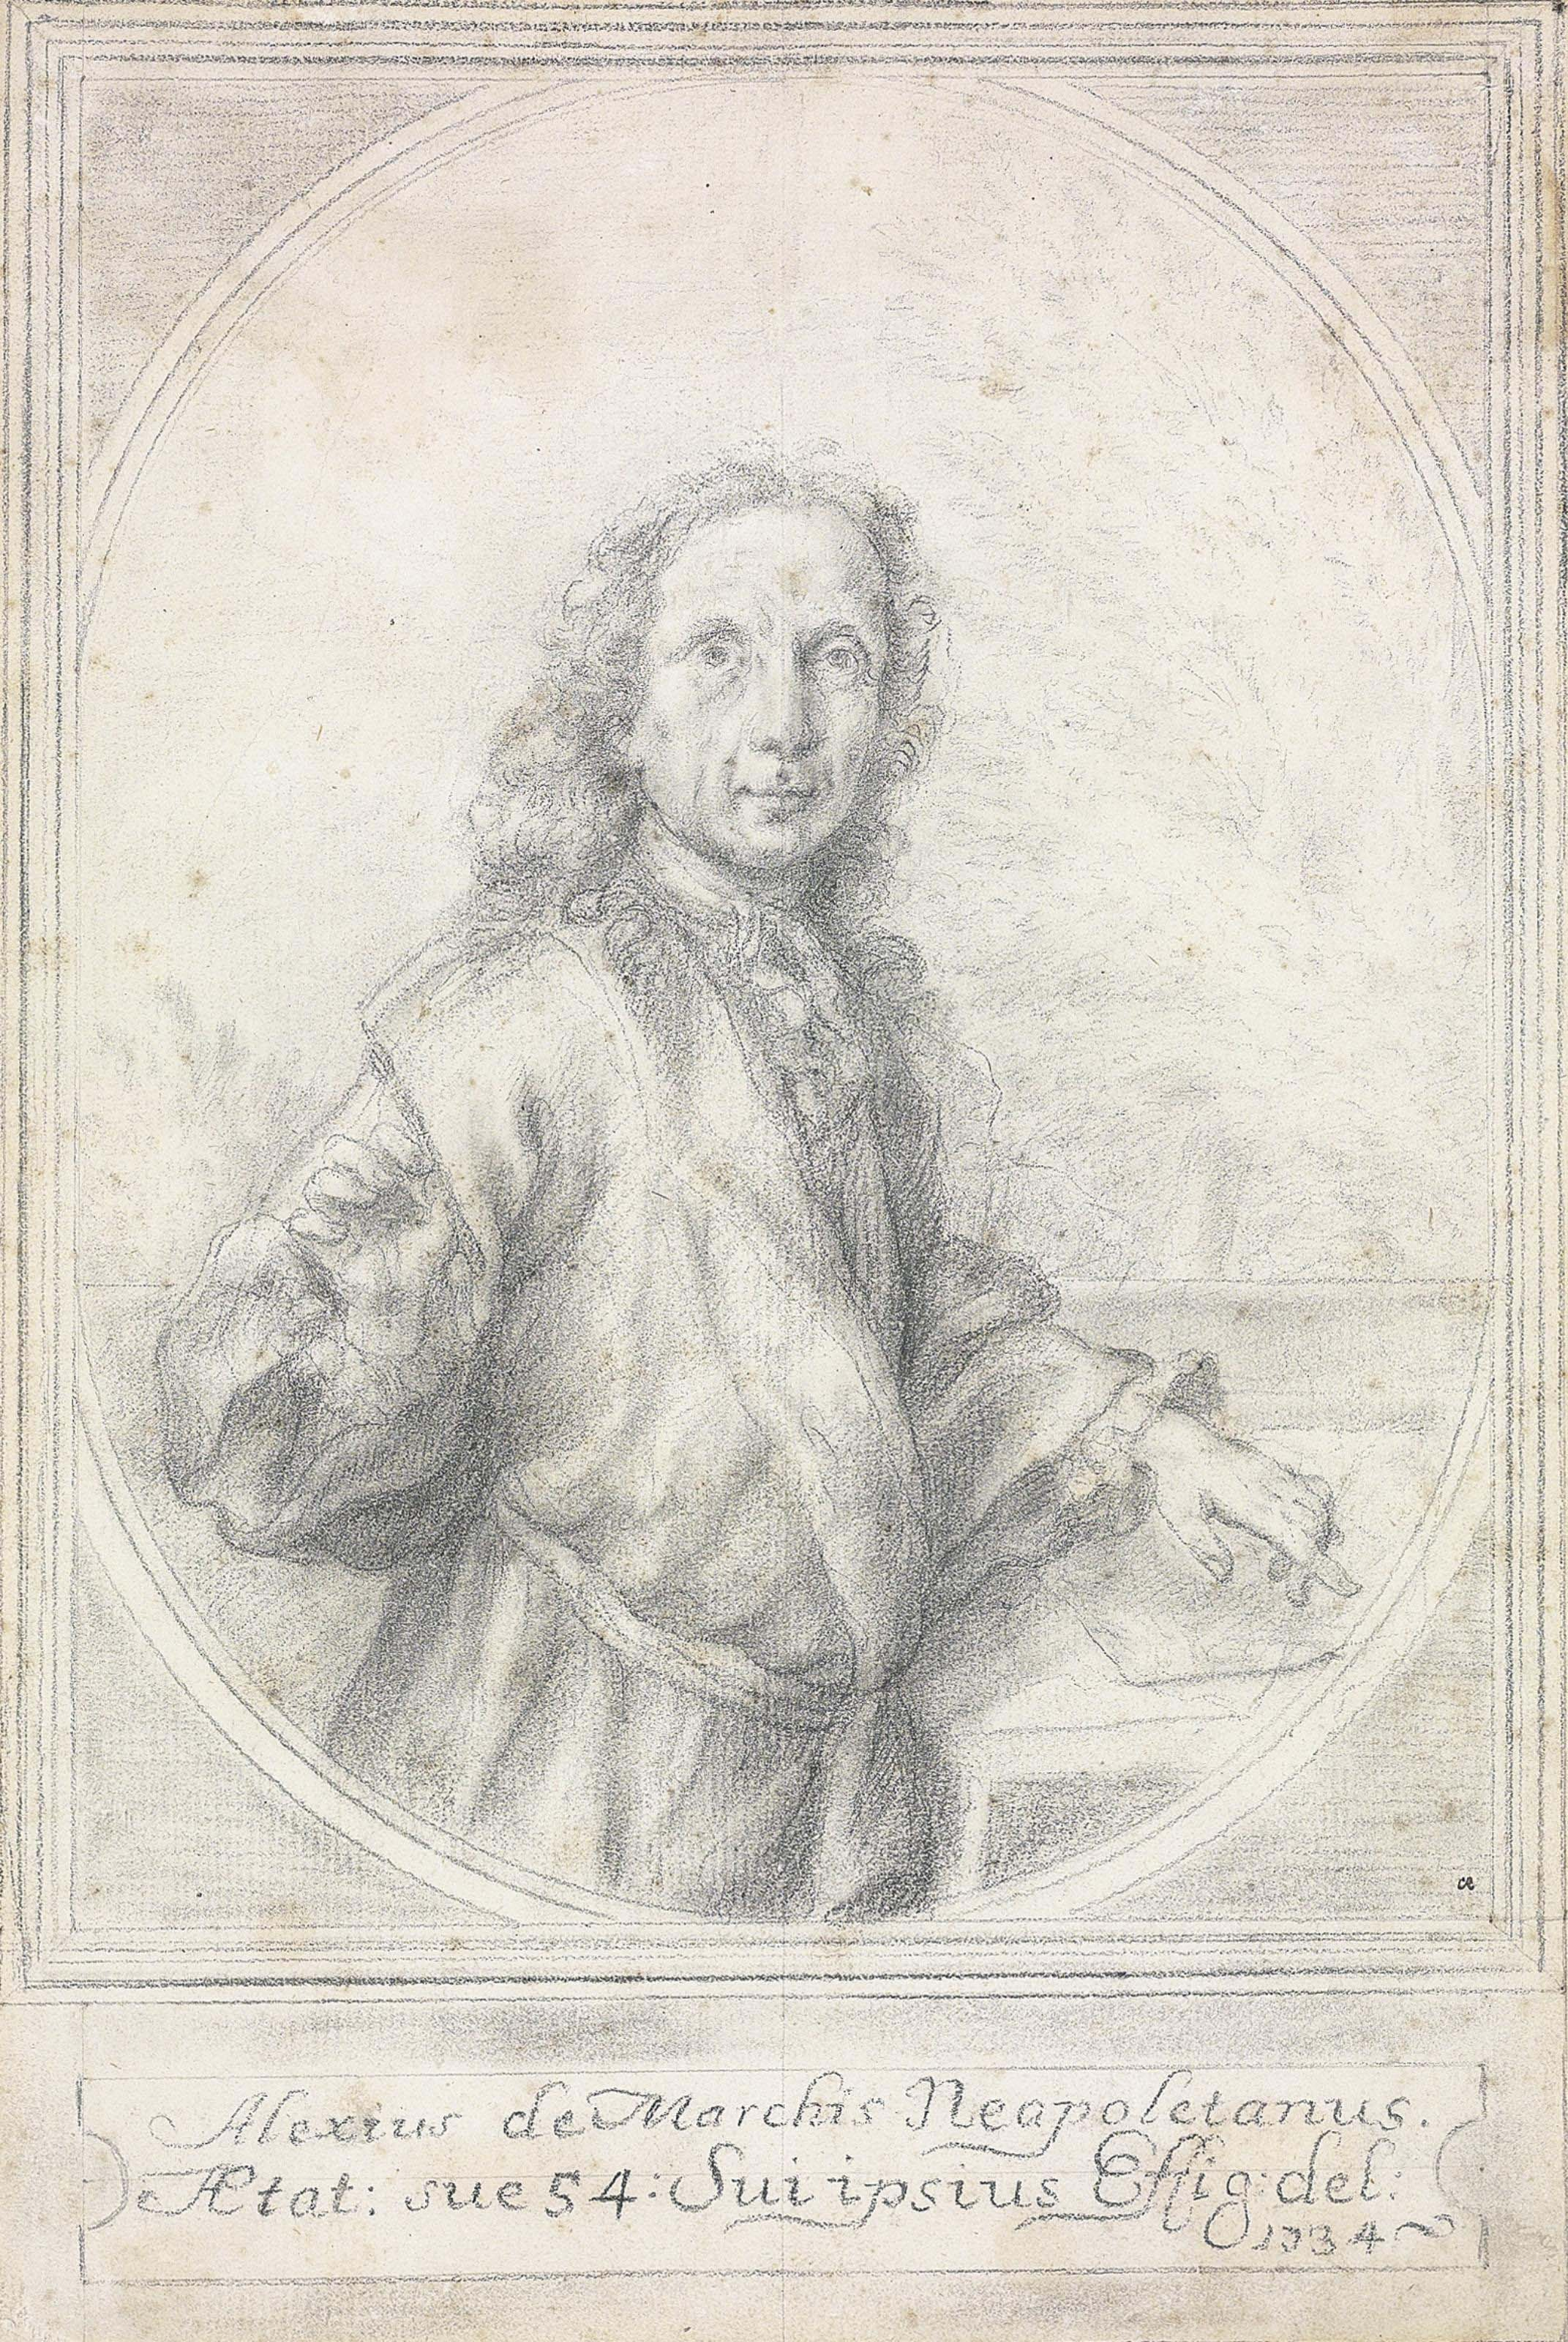 Portrait of the artist, half-length, holding a porte-crayon, in a trompe l'oeil oval frame